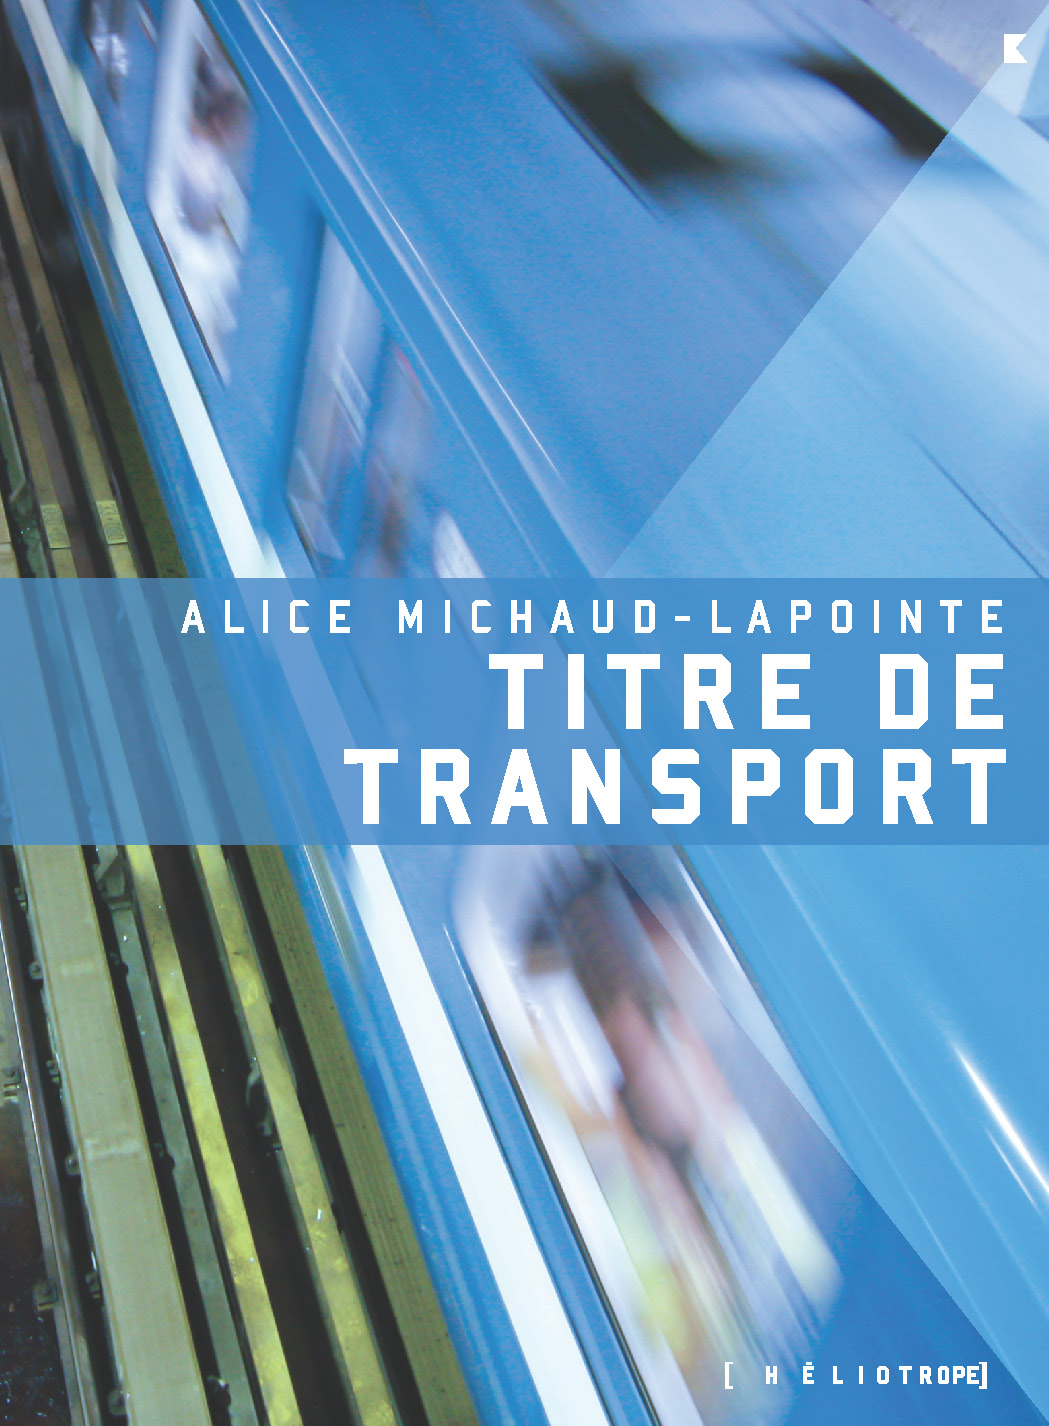 Couverture : Titre de transport Alice Michaud-lapointe